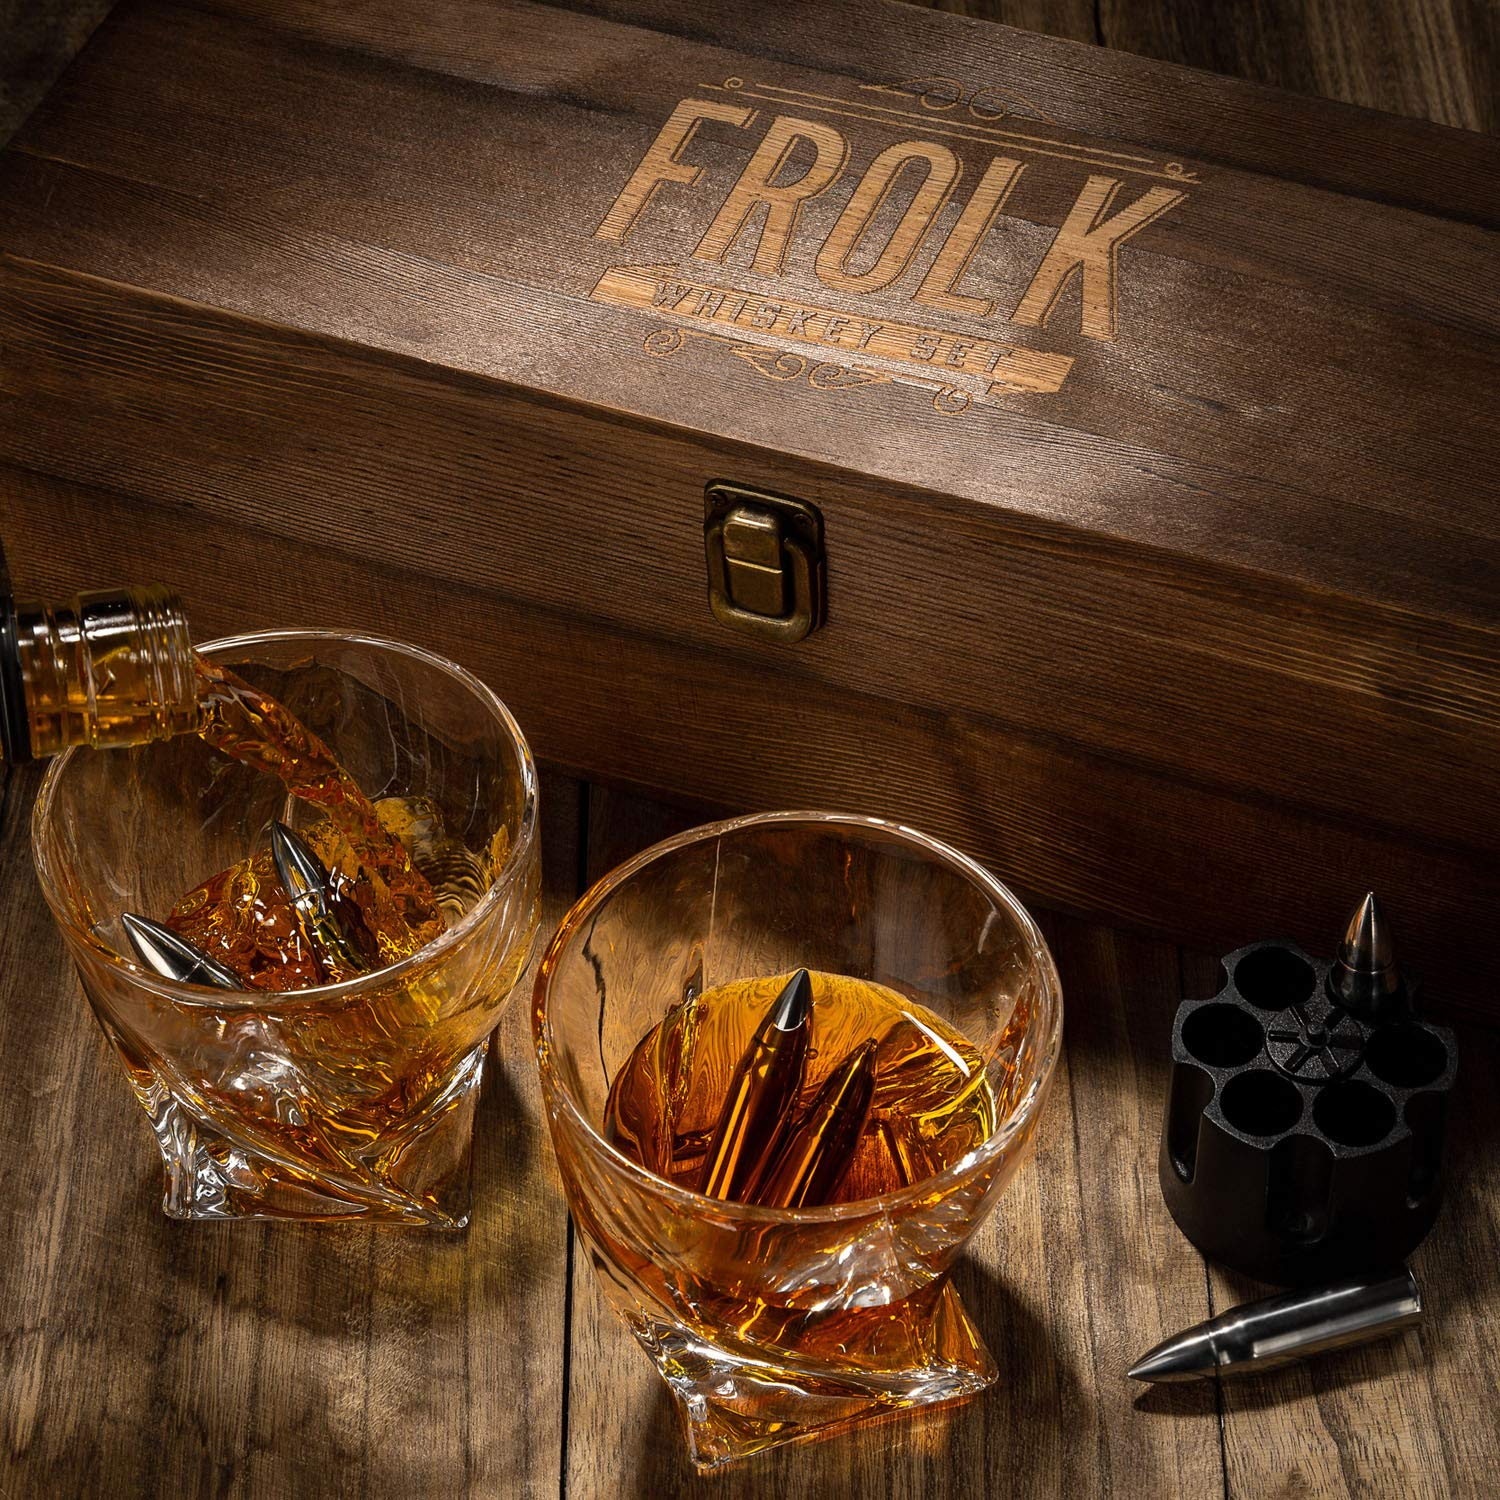 Whiskey Bullet Stones Premium Gift Set By Frolk, Set Of 6 Extra Large Stainless Steel Whiskey Stones, 2 Large Twisted Whiskey Glasses (11 oz), Freezer Base, Velvet Pouch & Tongs In Novelty Wooden Box by Frolk (Image #6)